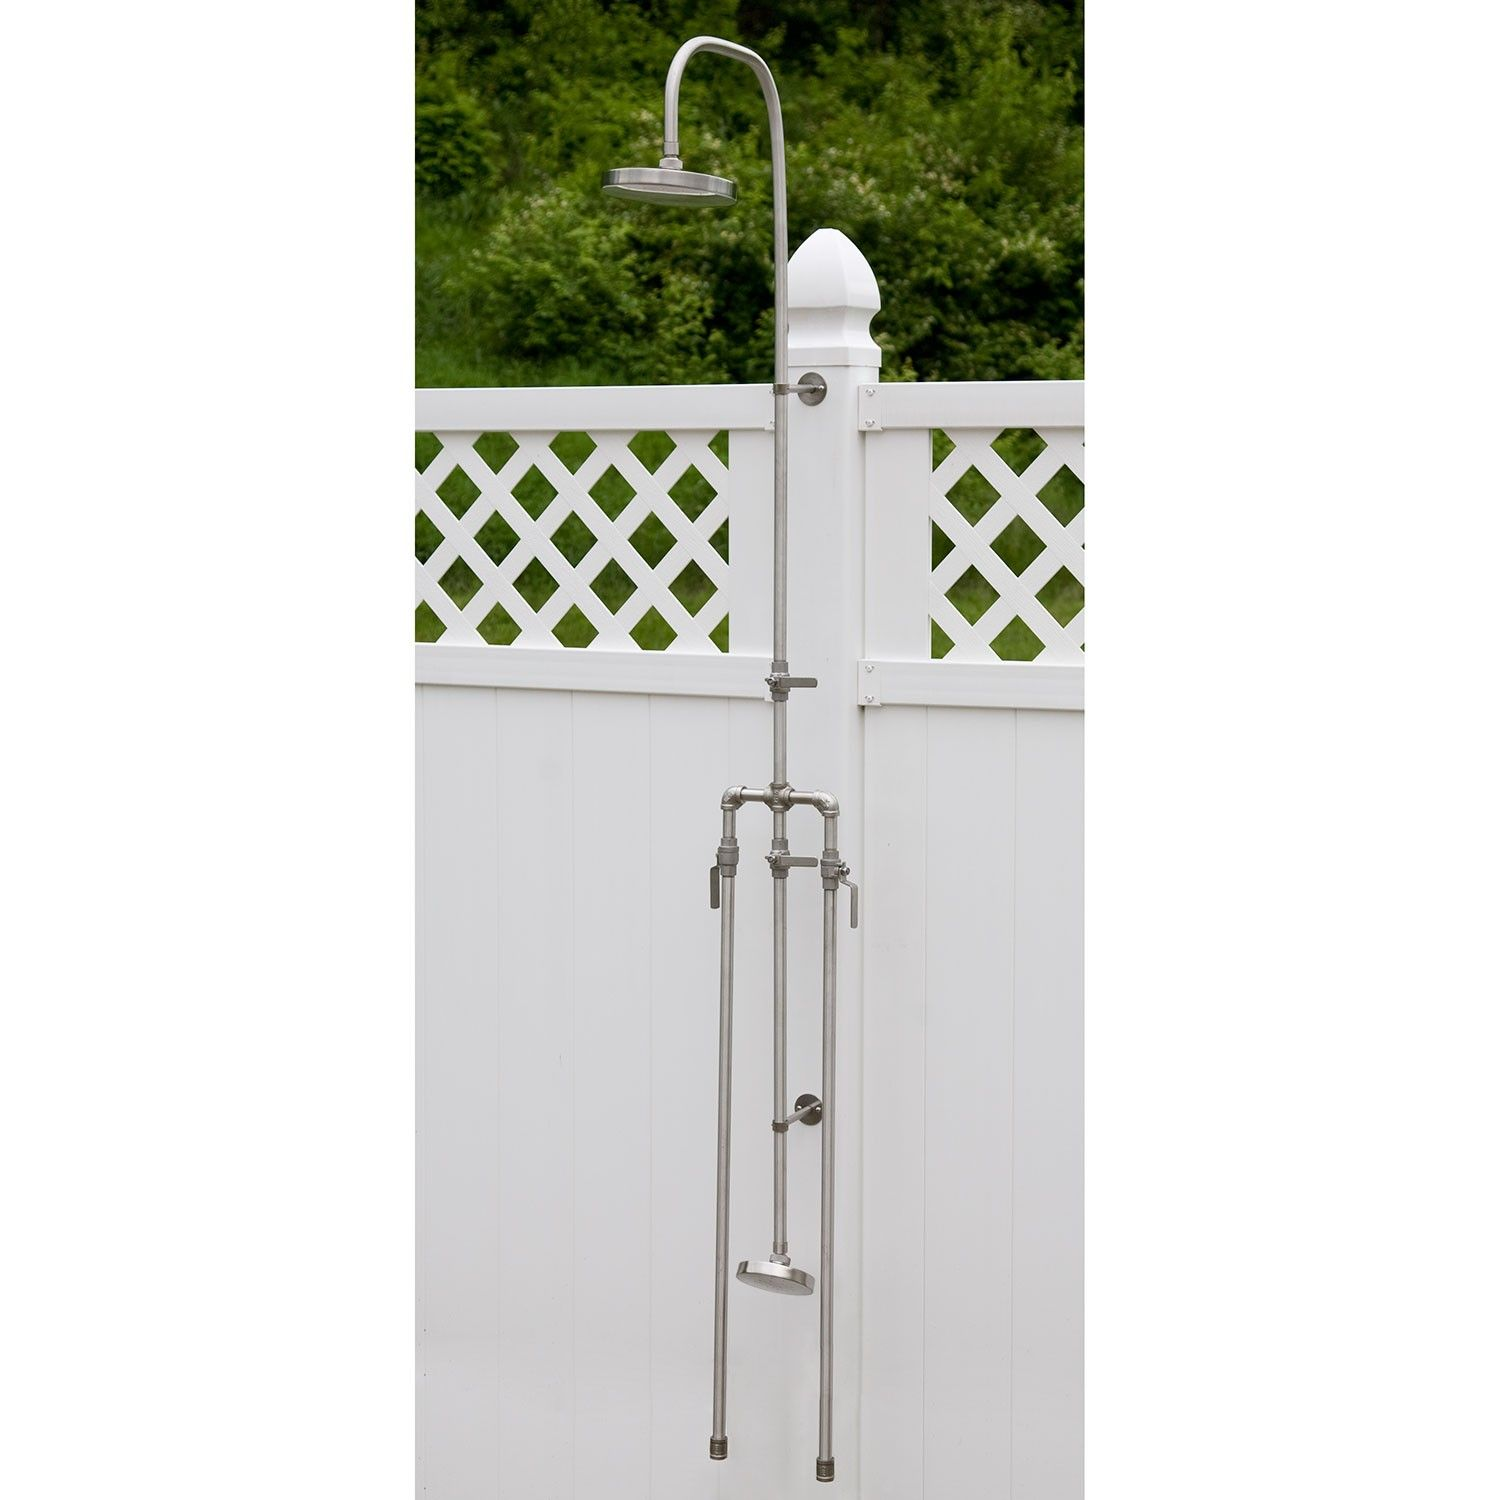 Deluxe Outdoor Shower Mixer With Foot Shower Outdoor Showers Outdoor Outdoor Shower Sauna Design Pool Shower